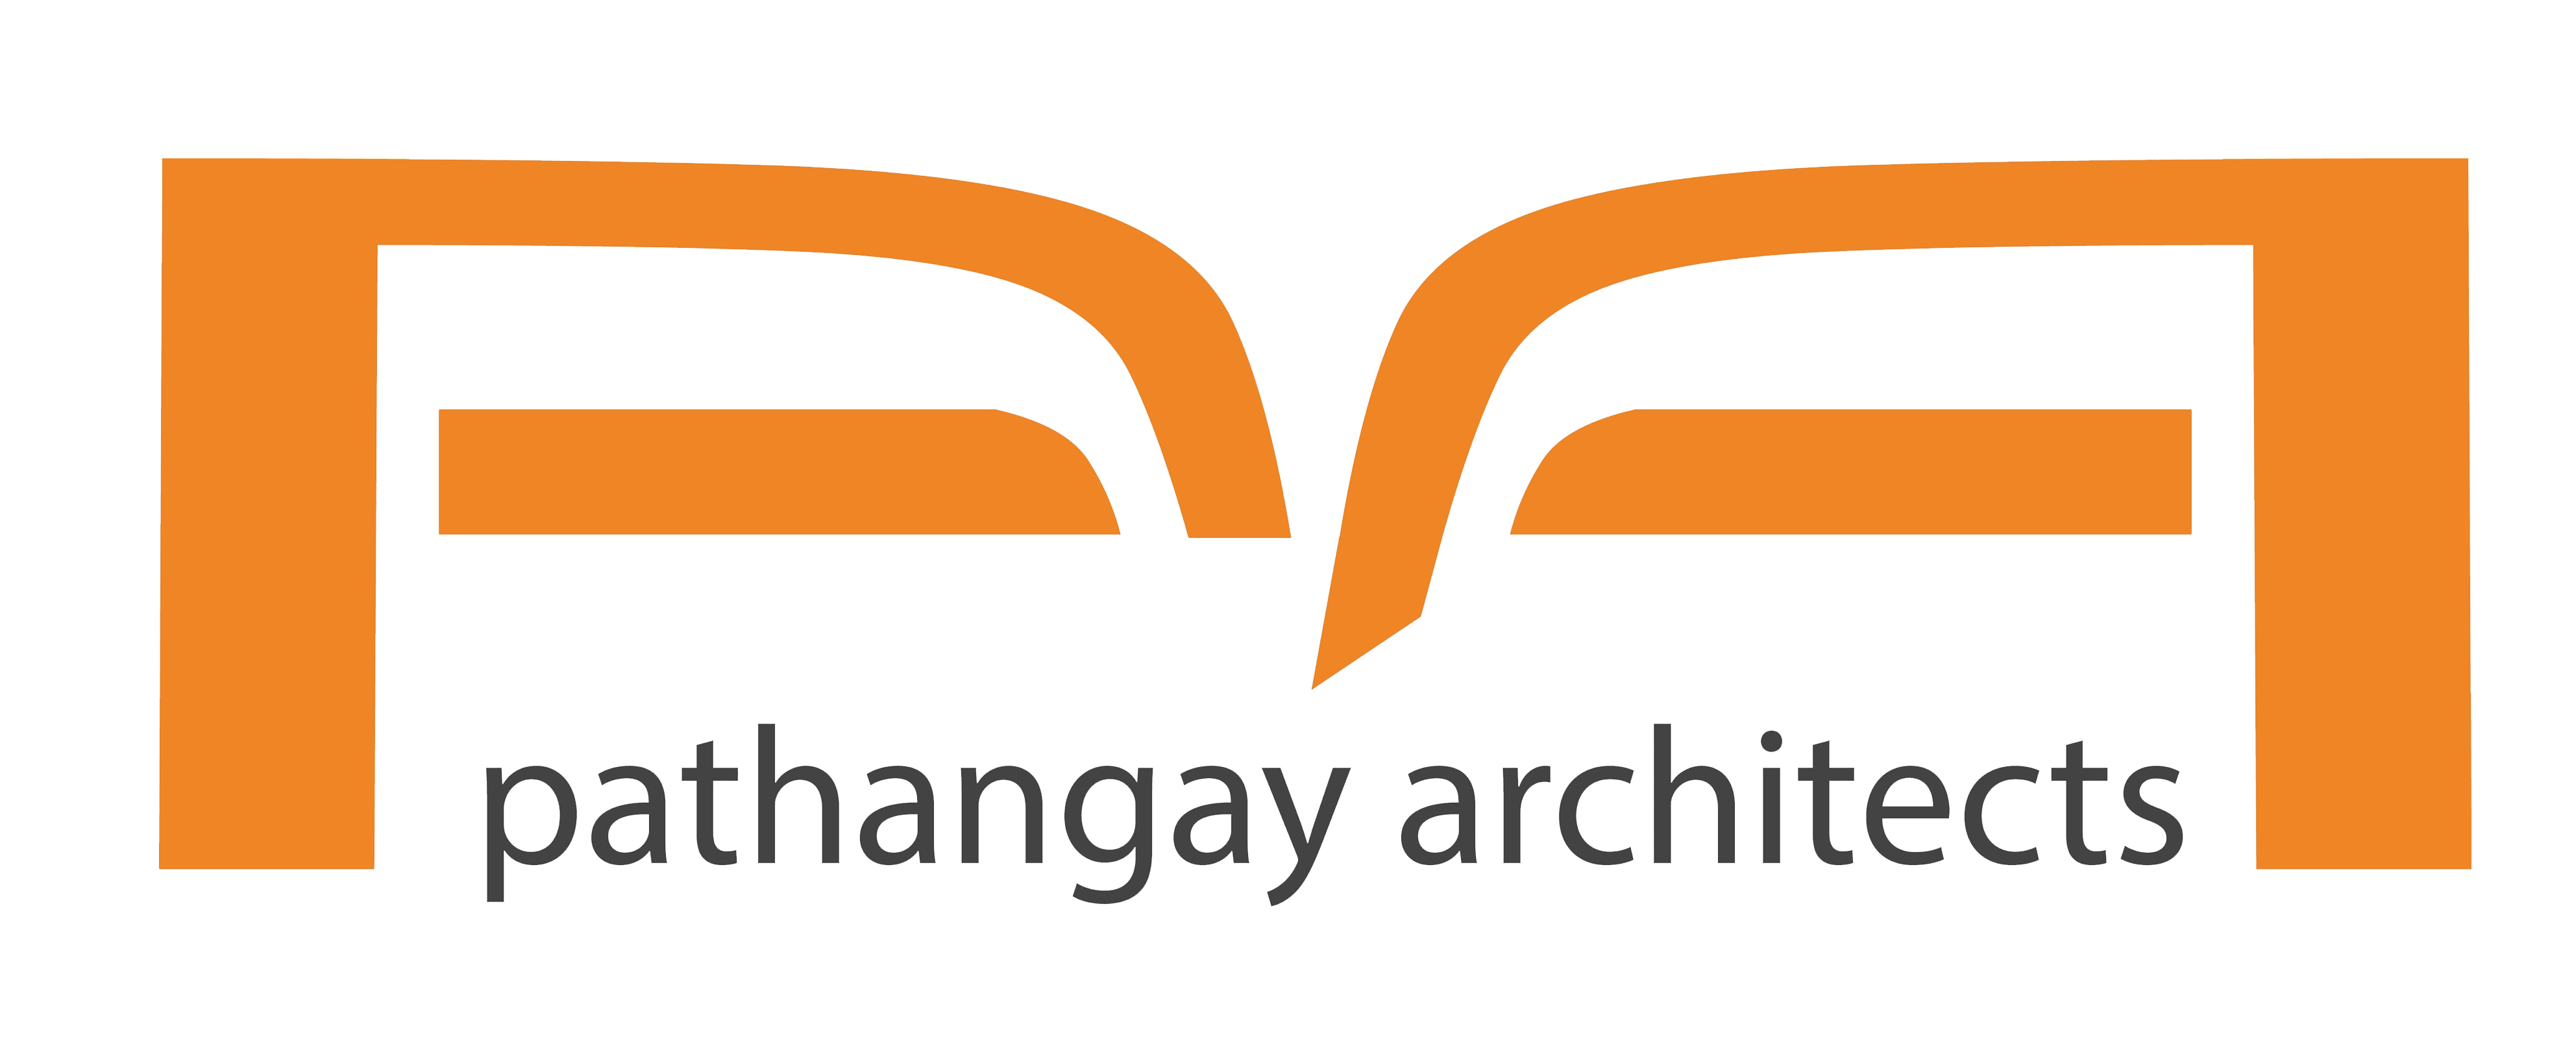 pathangay architects